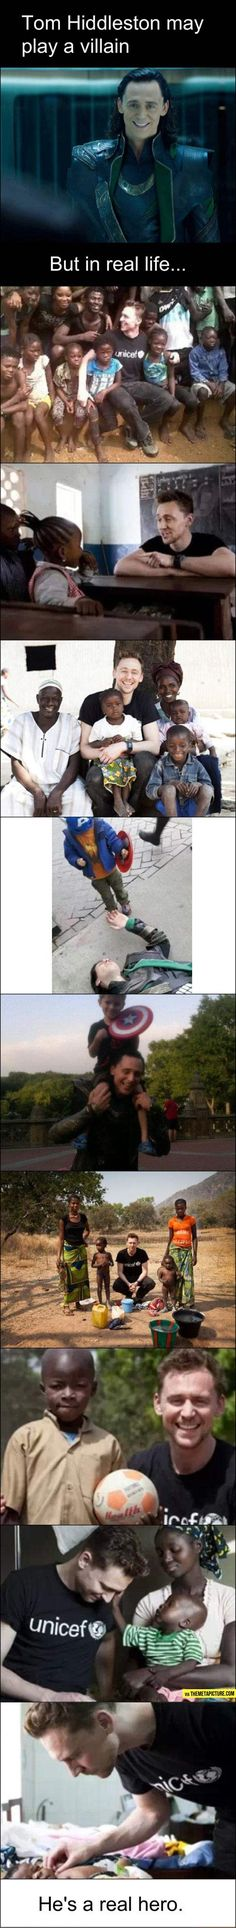 You're a good man, Tom Hiddleston…